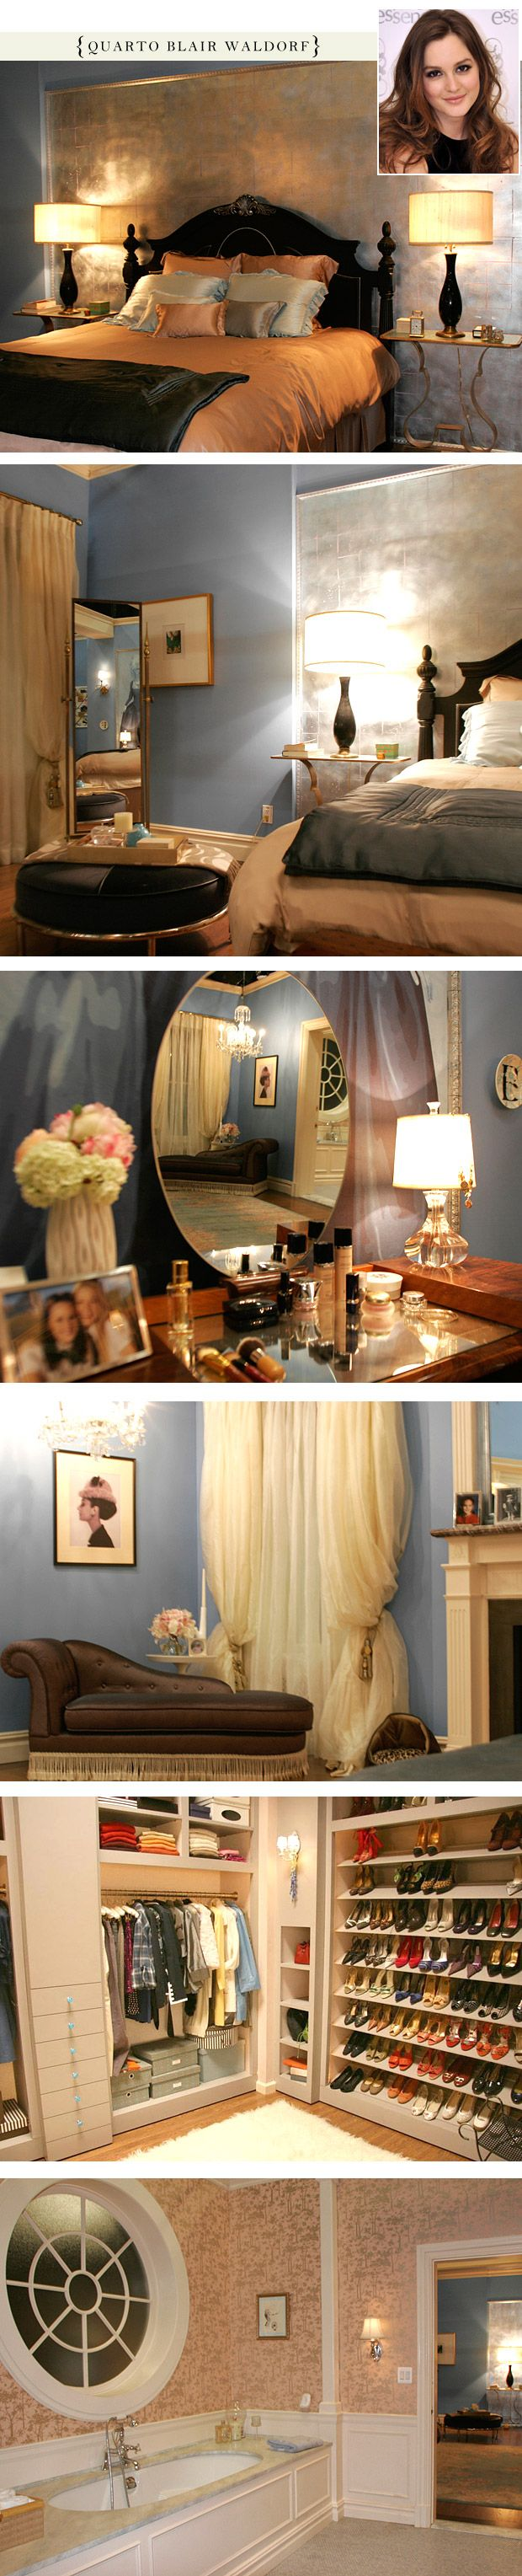 living-gazette-barbara-resende-quarto-blair-waldorf